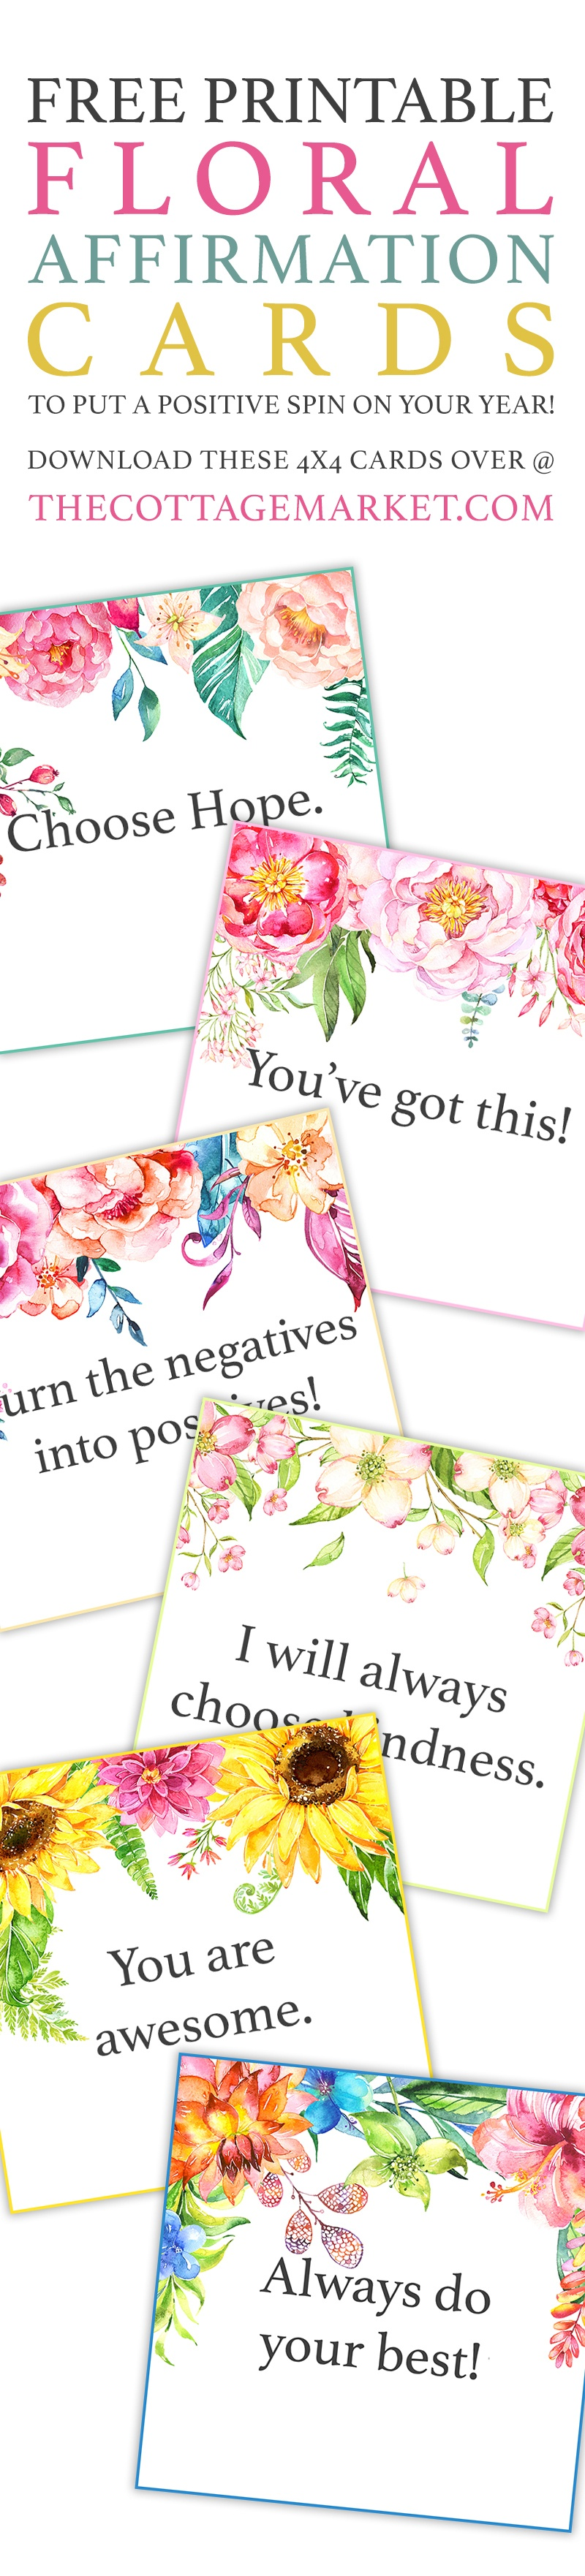 Free Printable Floral Affirmation Cards /// To Put A Positive Spin - Free Printable Positive Affirmation Cards